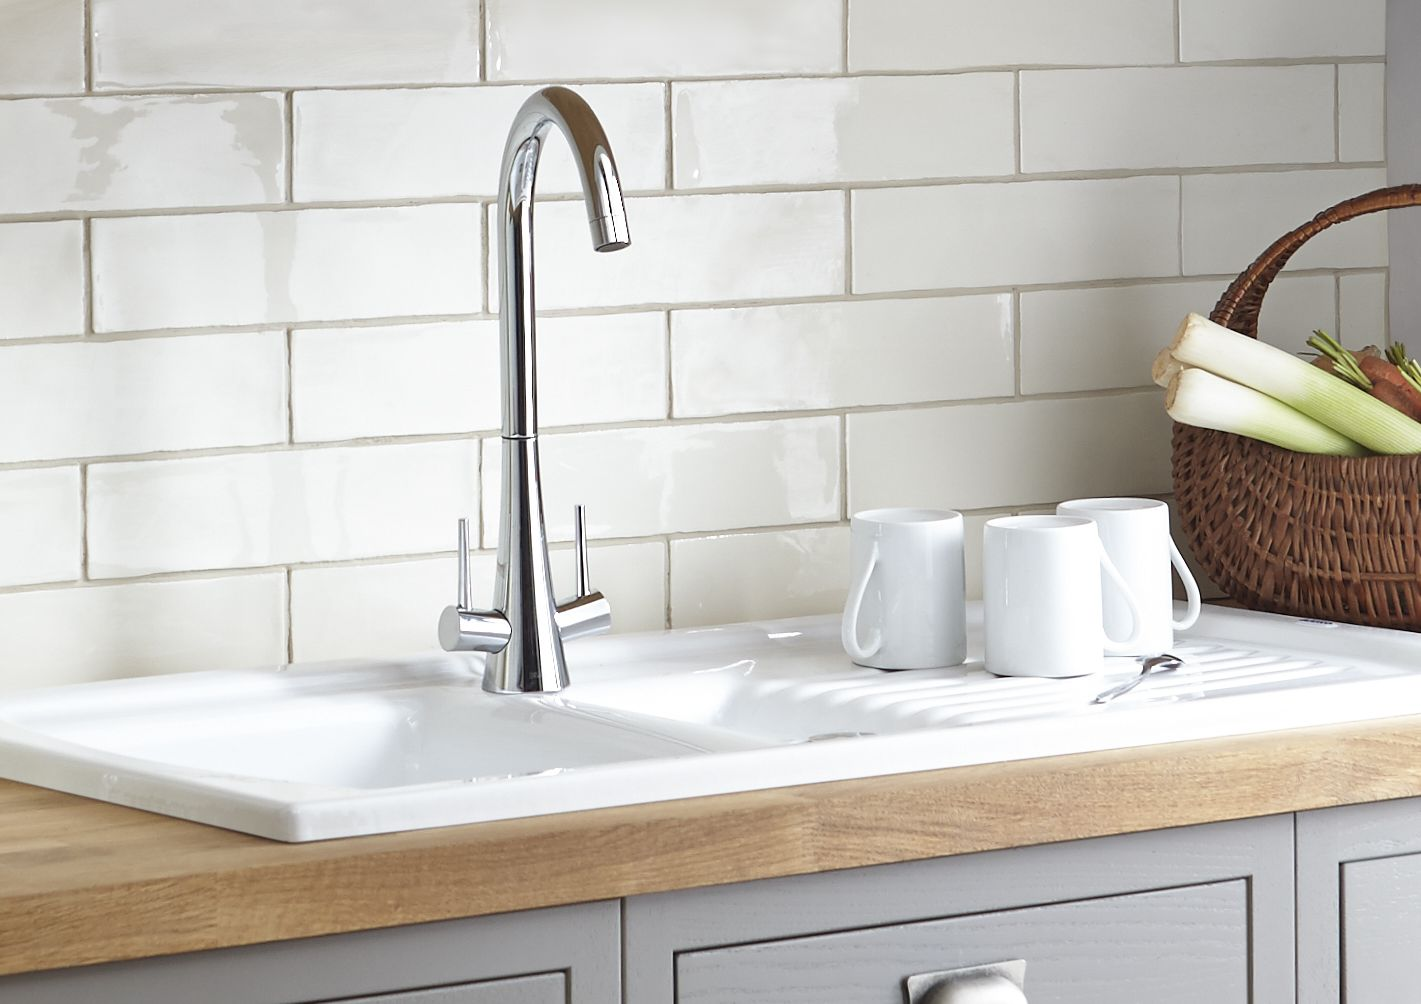 Bathroom Sinks B&Q kitchen taps | pillar & mixer taps | diy at b&q